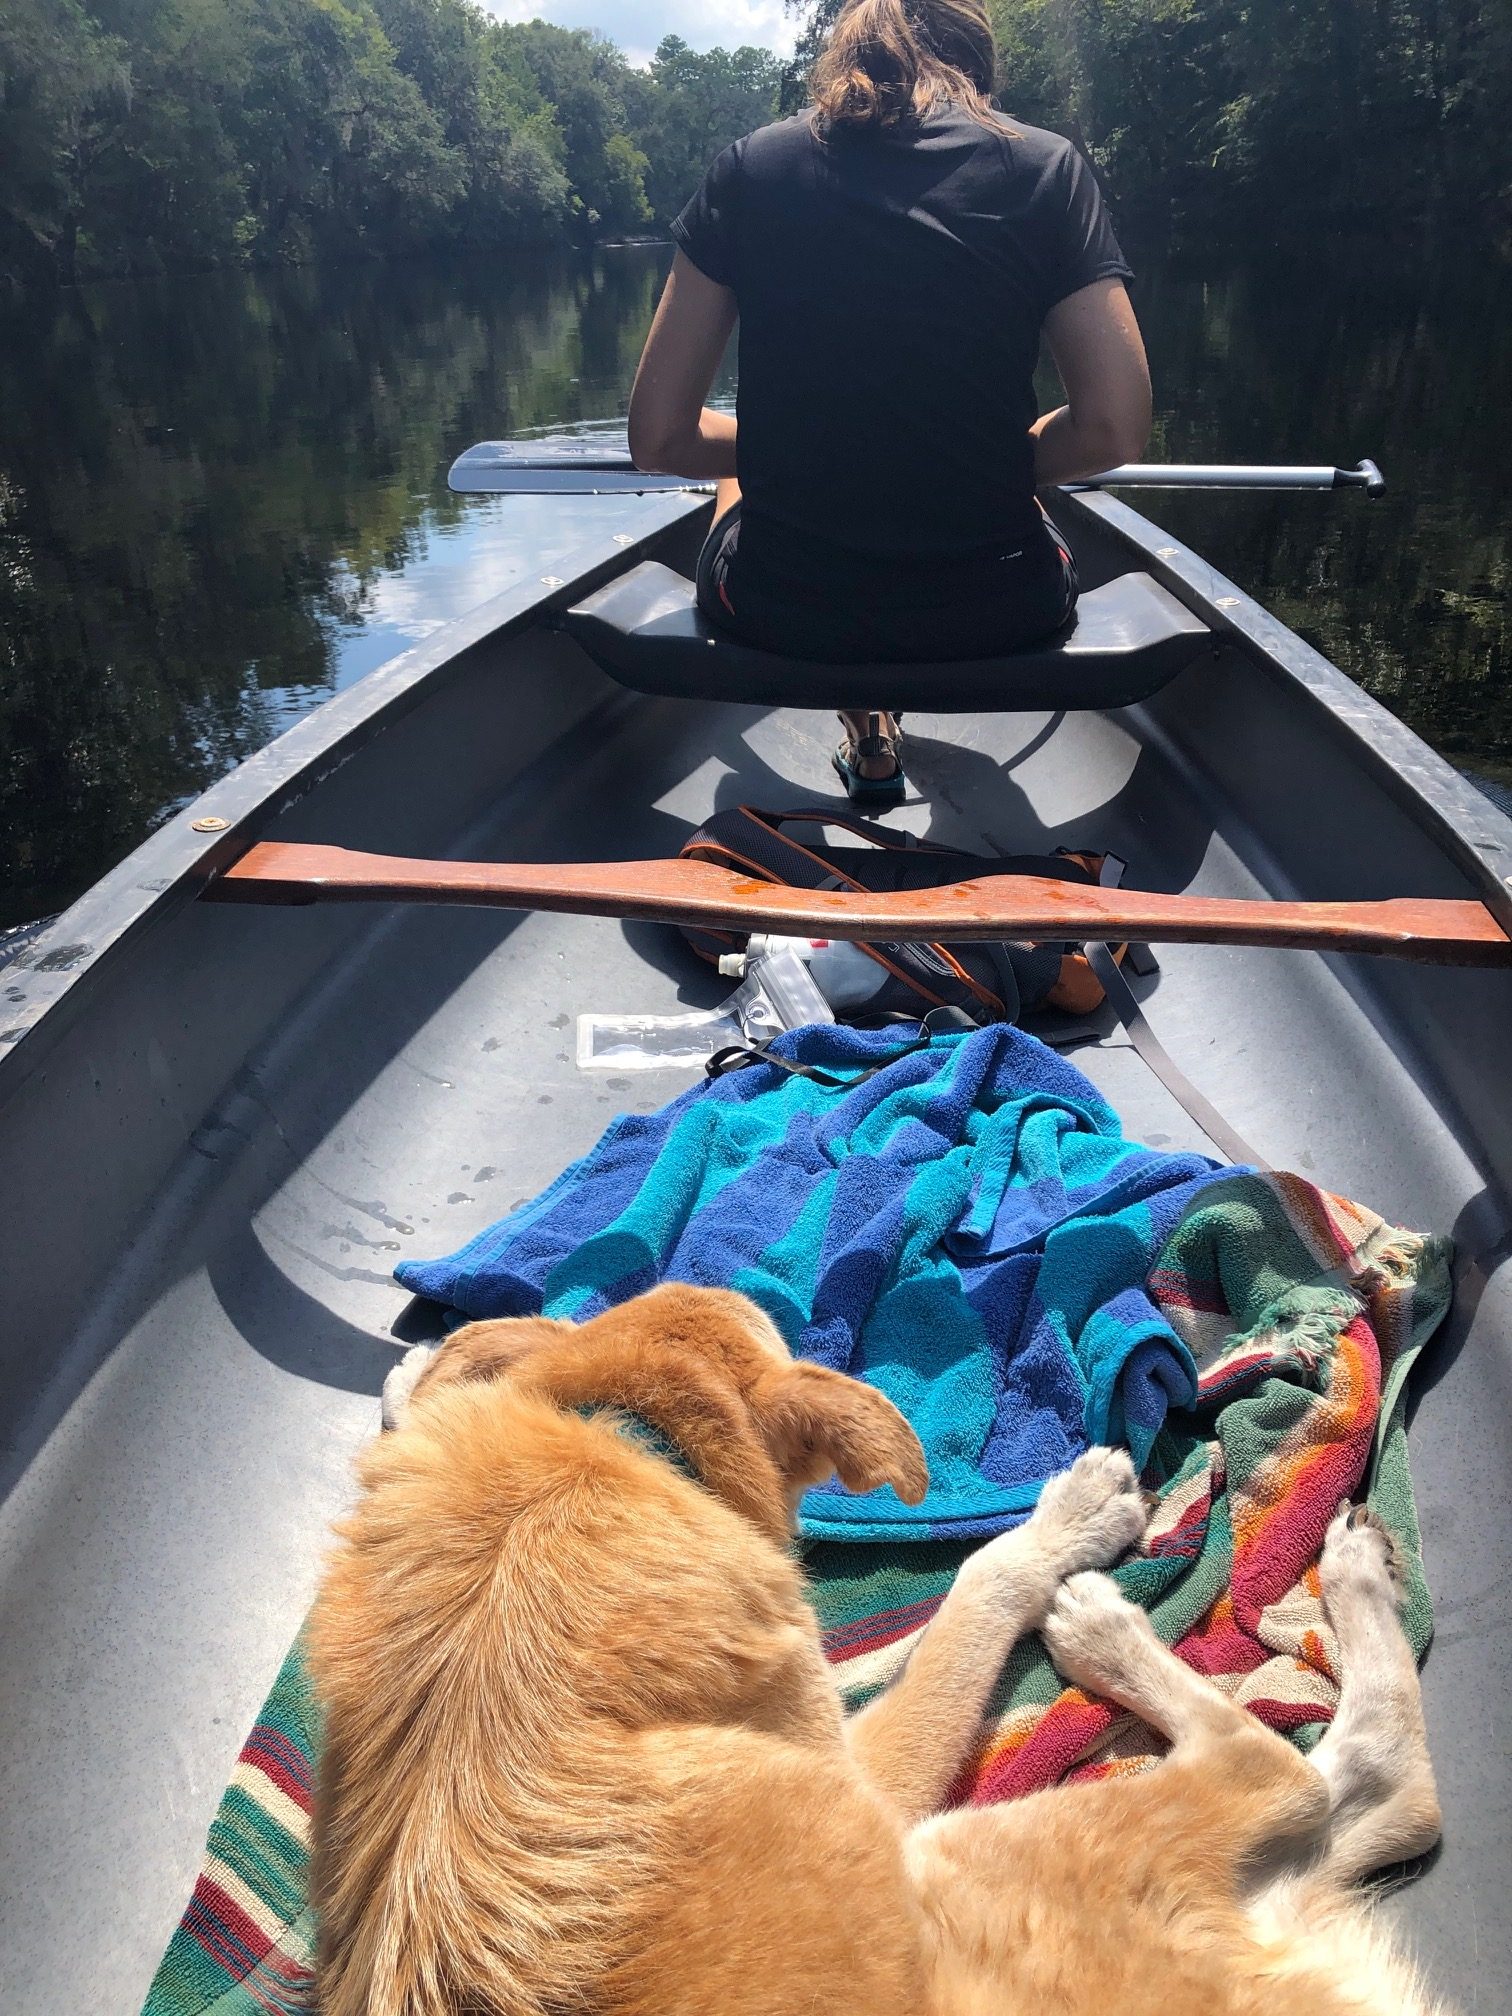 Orang dog lying in a canoe in the water with back of person up front